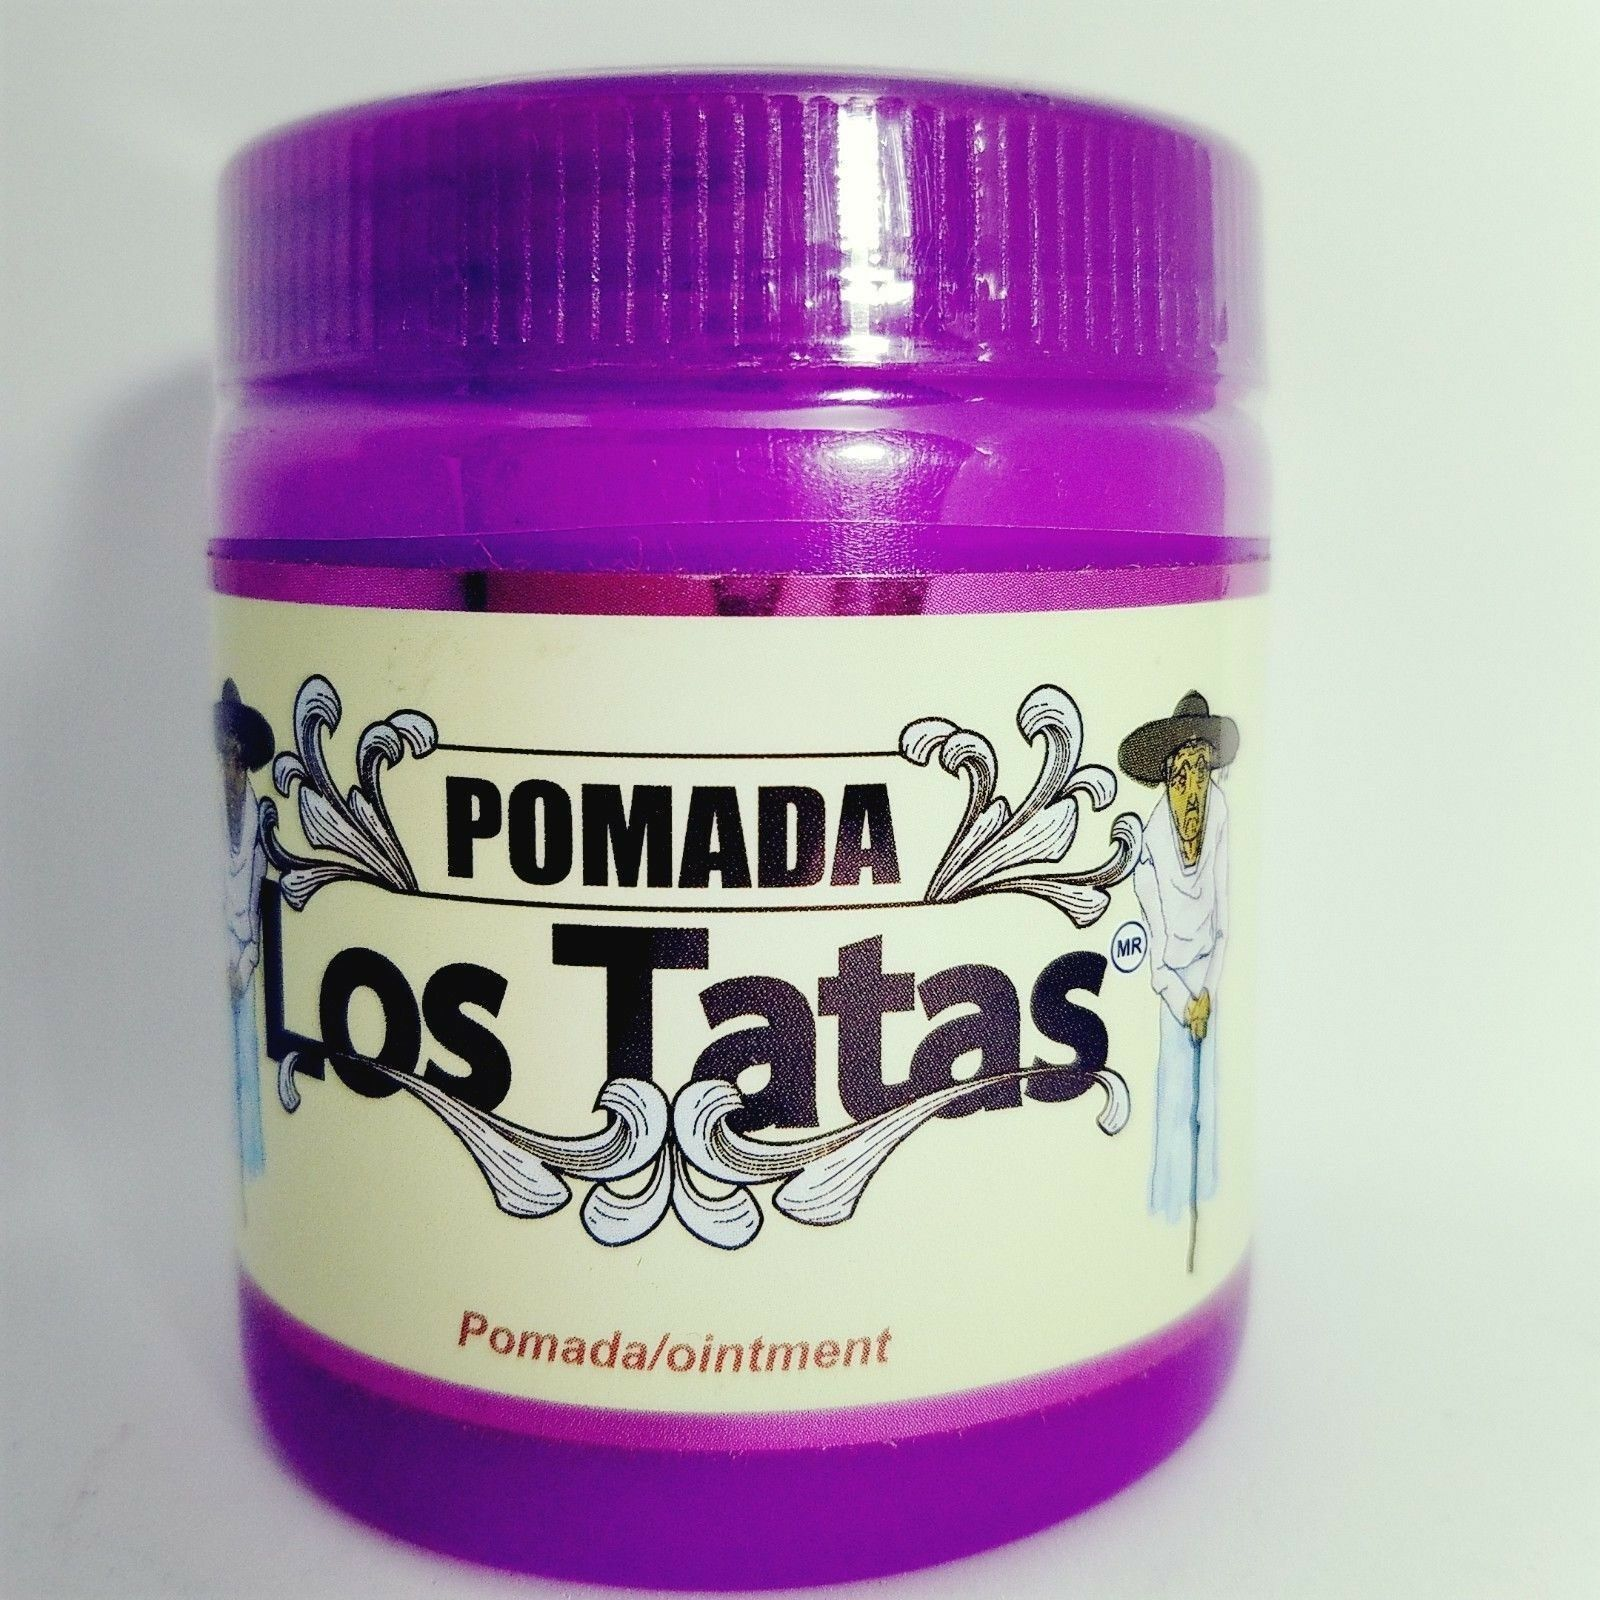 POMADA LOS TATAS OINTMENT for MUSCLE PAIN RELIEF authentic mexican remedies